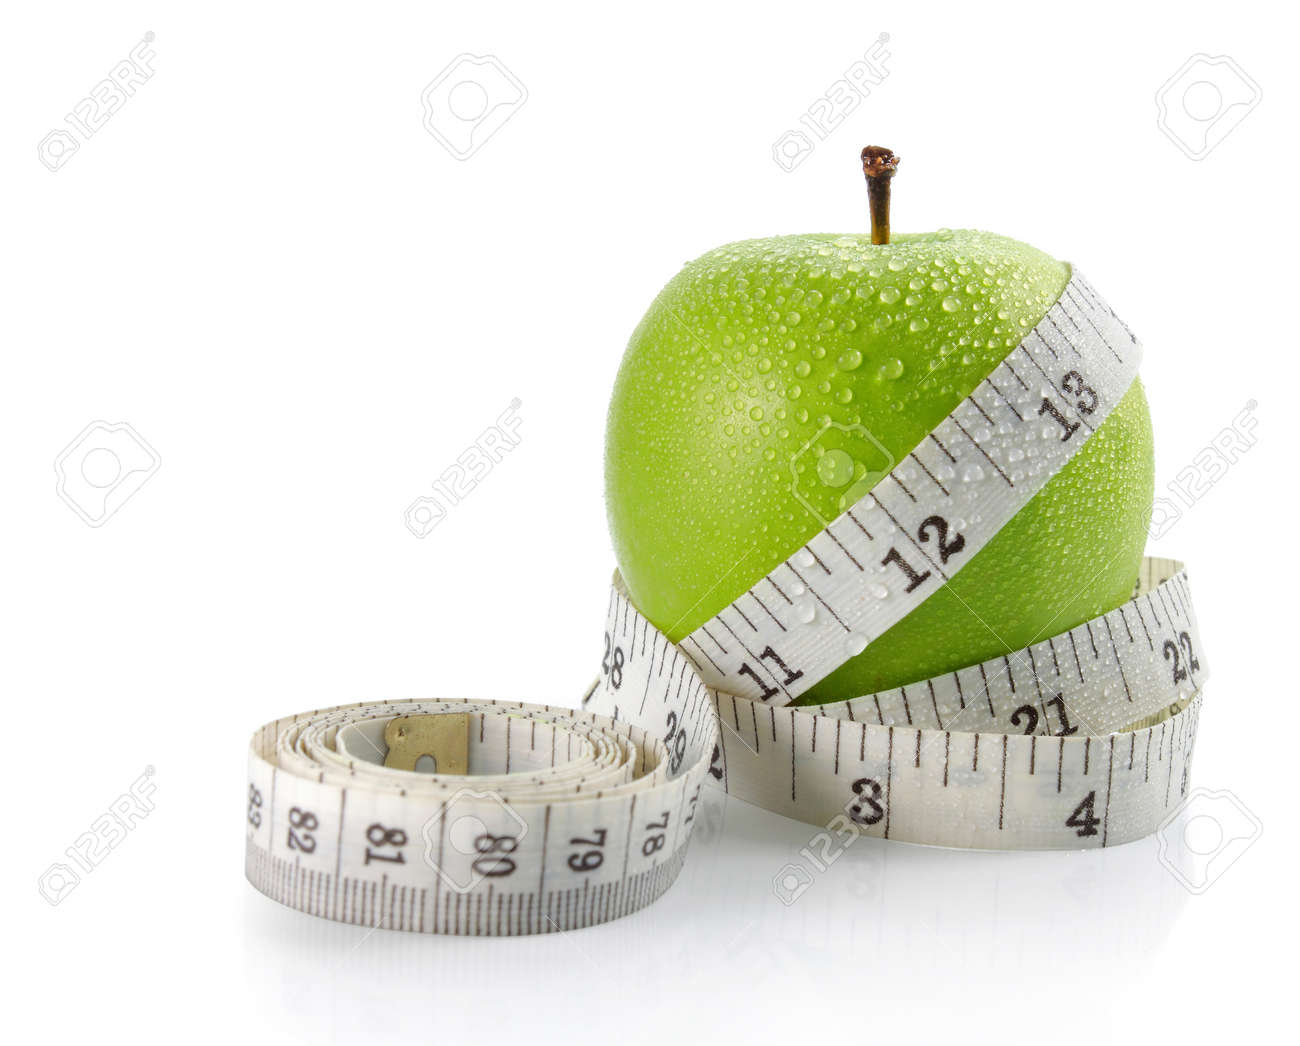 fresh apple with measuring tape. isolated over white background Standard-Bild - 9607729